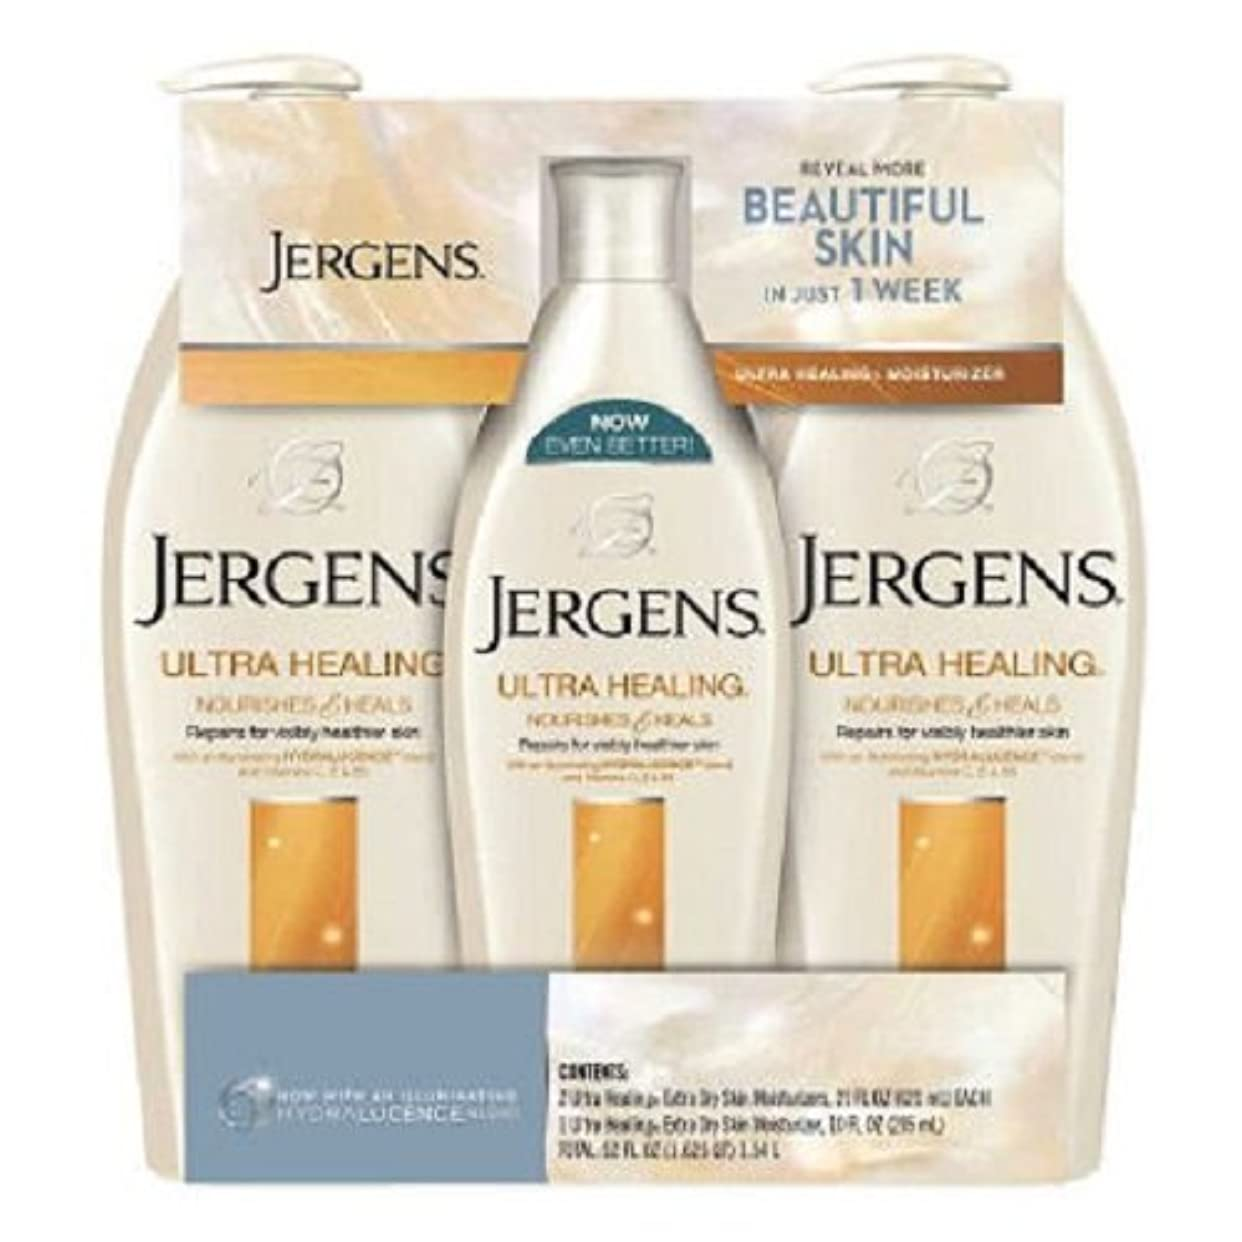 Jergens Ultra Healing Lotion Triple Pack 2 / 21 Oz. Bottles And 1 / 10 Ounce